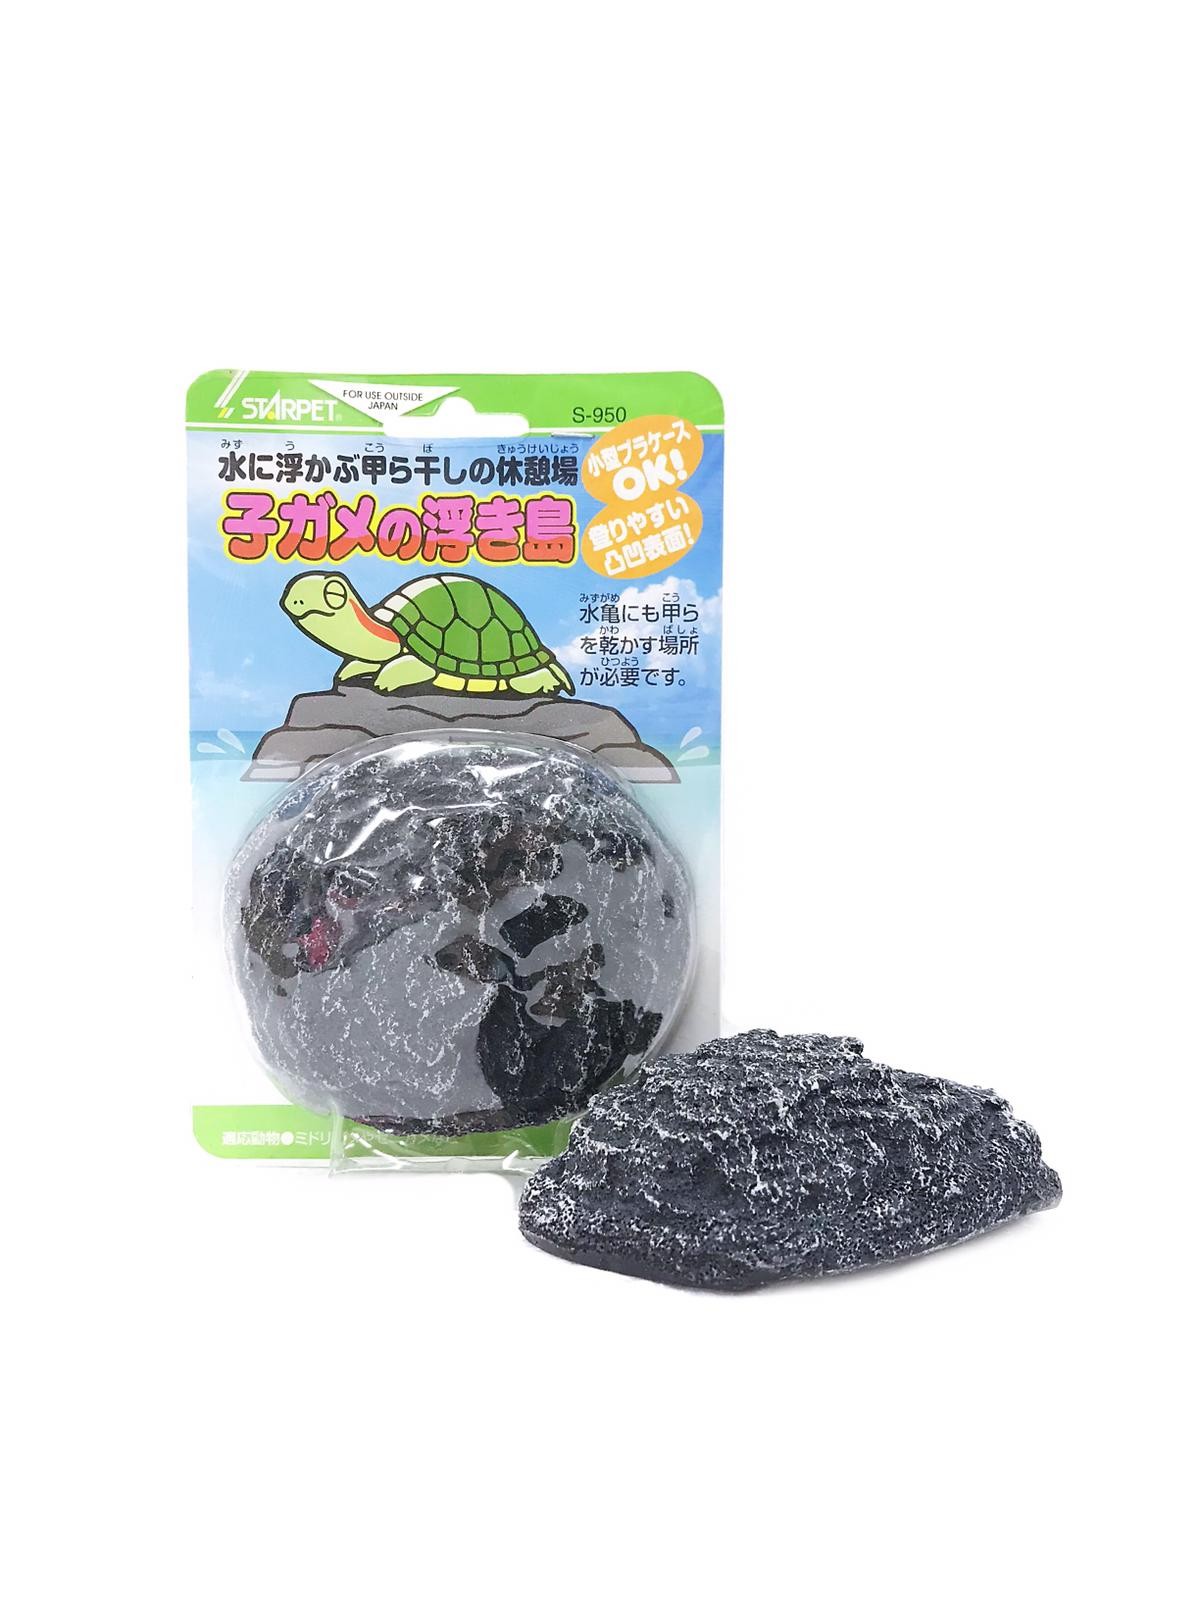 Turtle Floating Stone